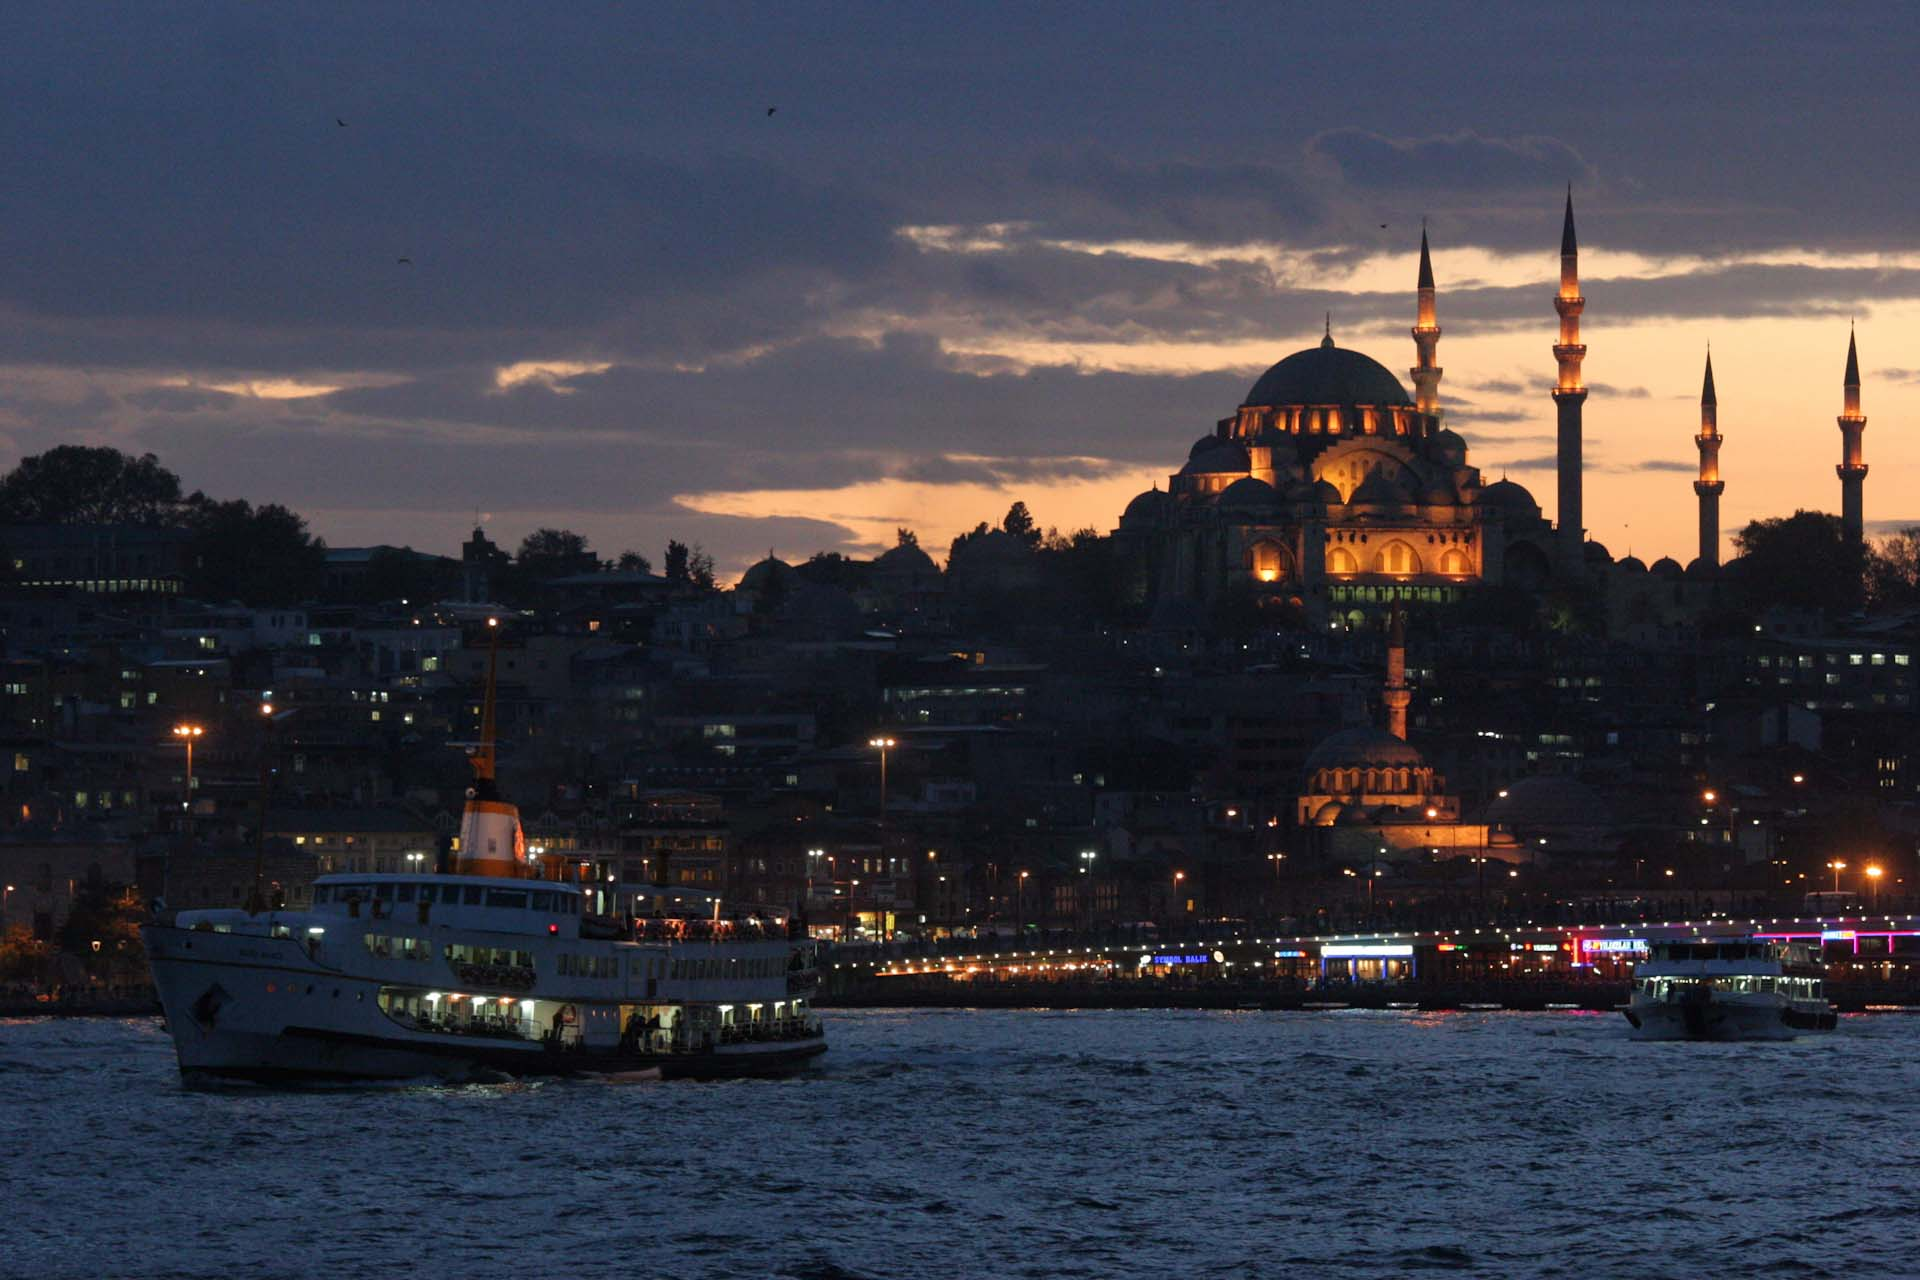 Getting dark on the Golden Horn in Eminönü